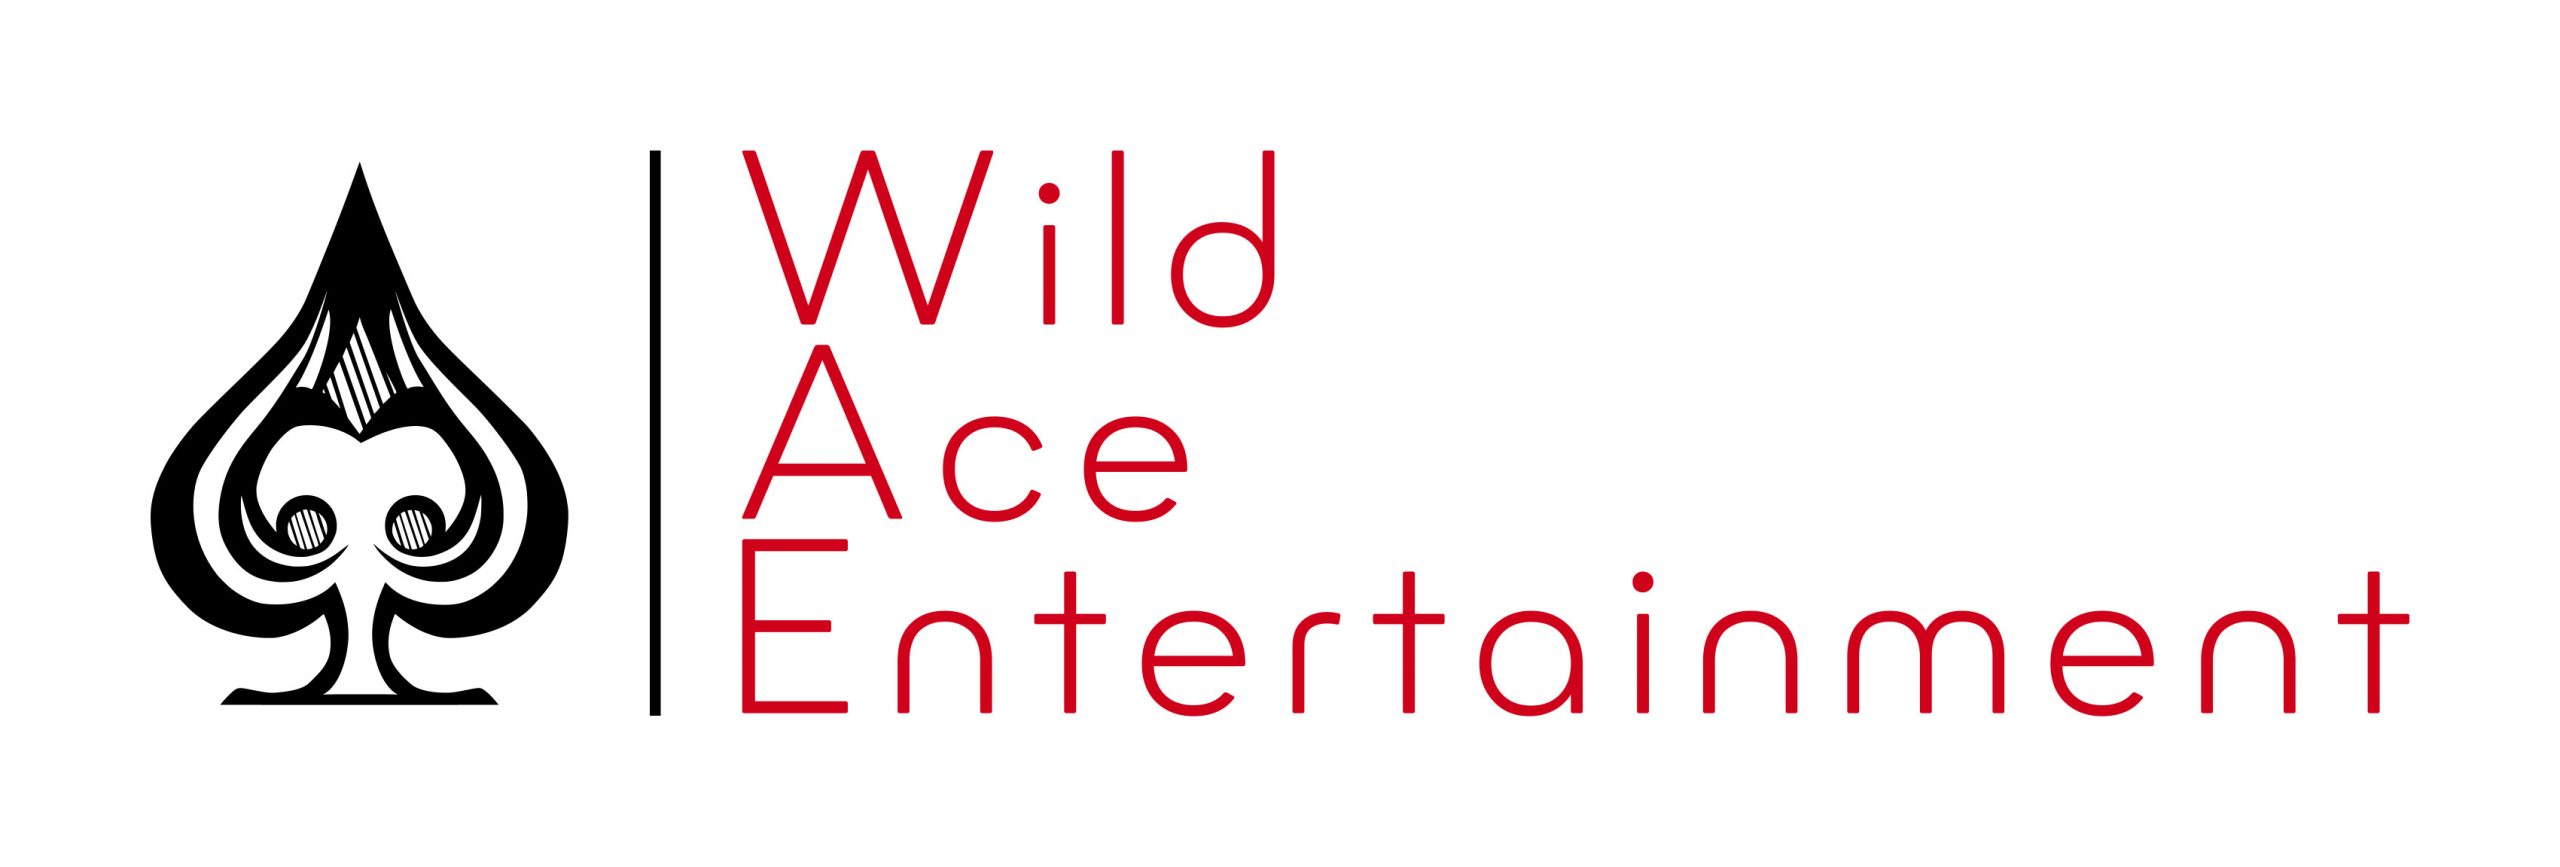 Wild Ace Entertainment